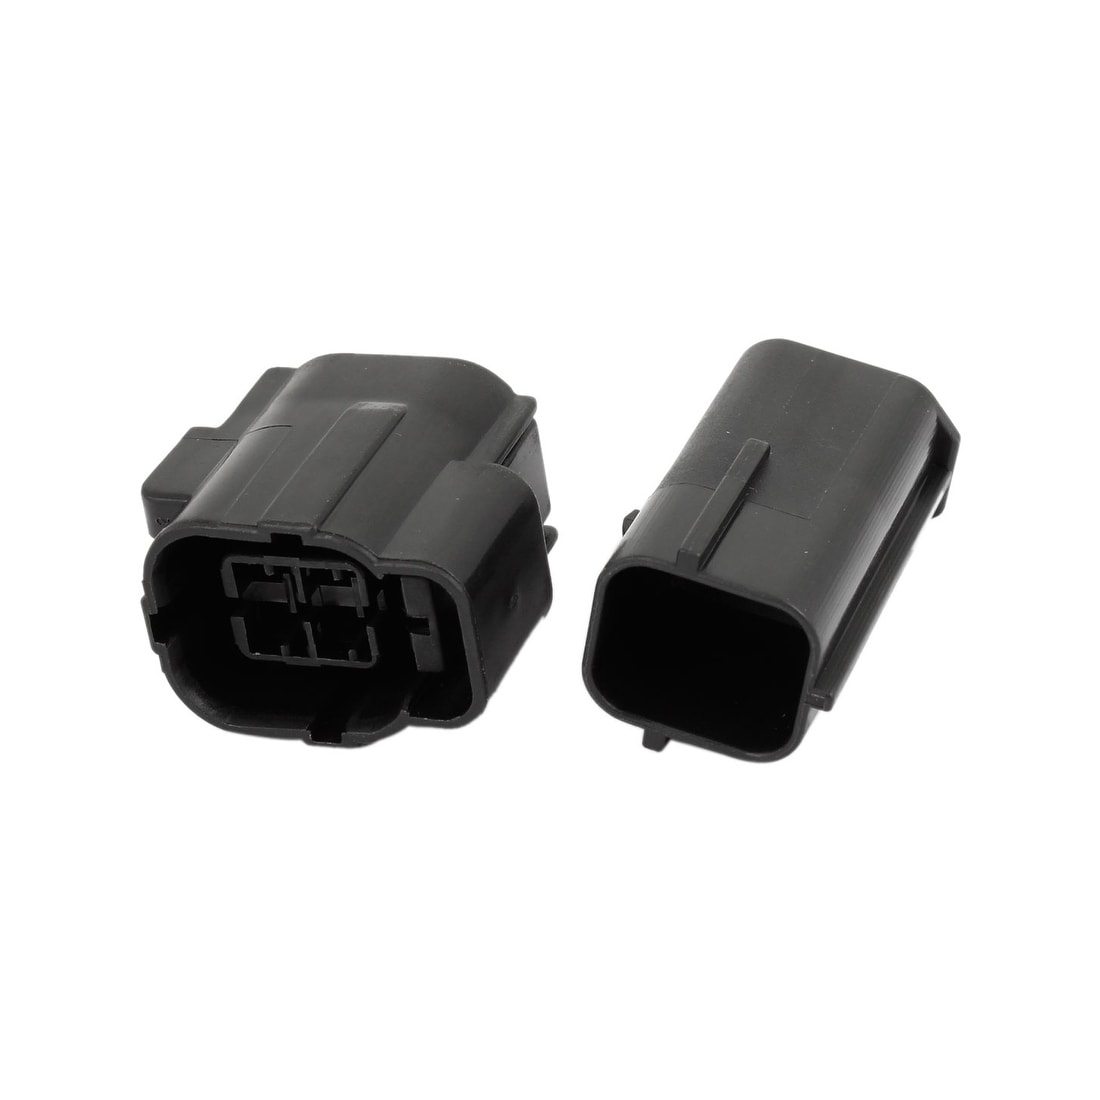 Shop Unique Bargains Wire Connectors Plug 4 Pins Way Waterproof About 10 Kit Pin Electrical Connector Car Auto Hid On Sale Free Shipping Orders Over 45